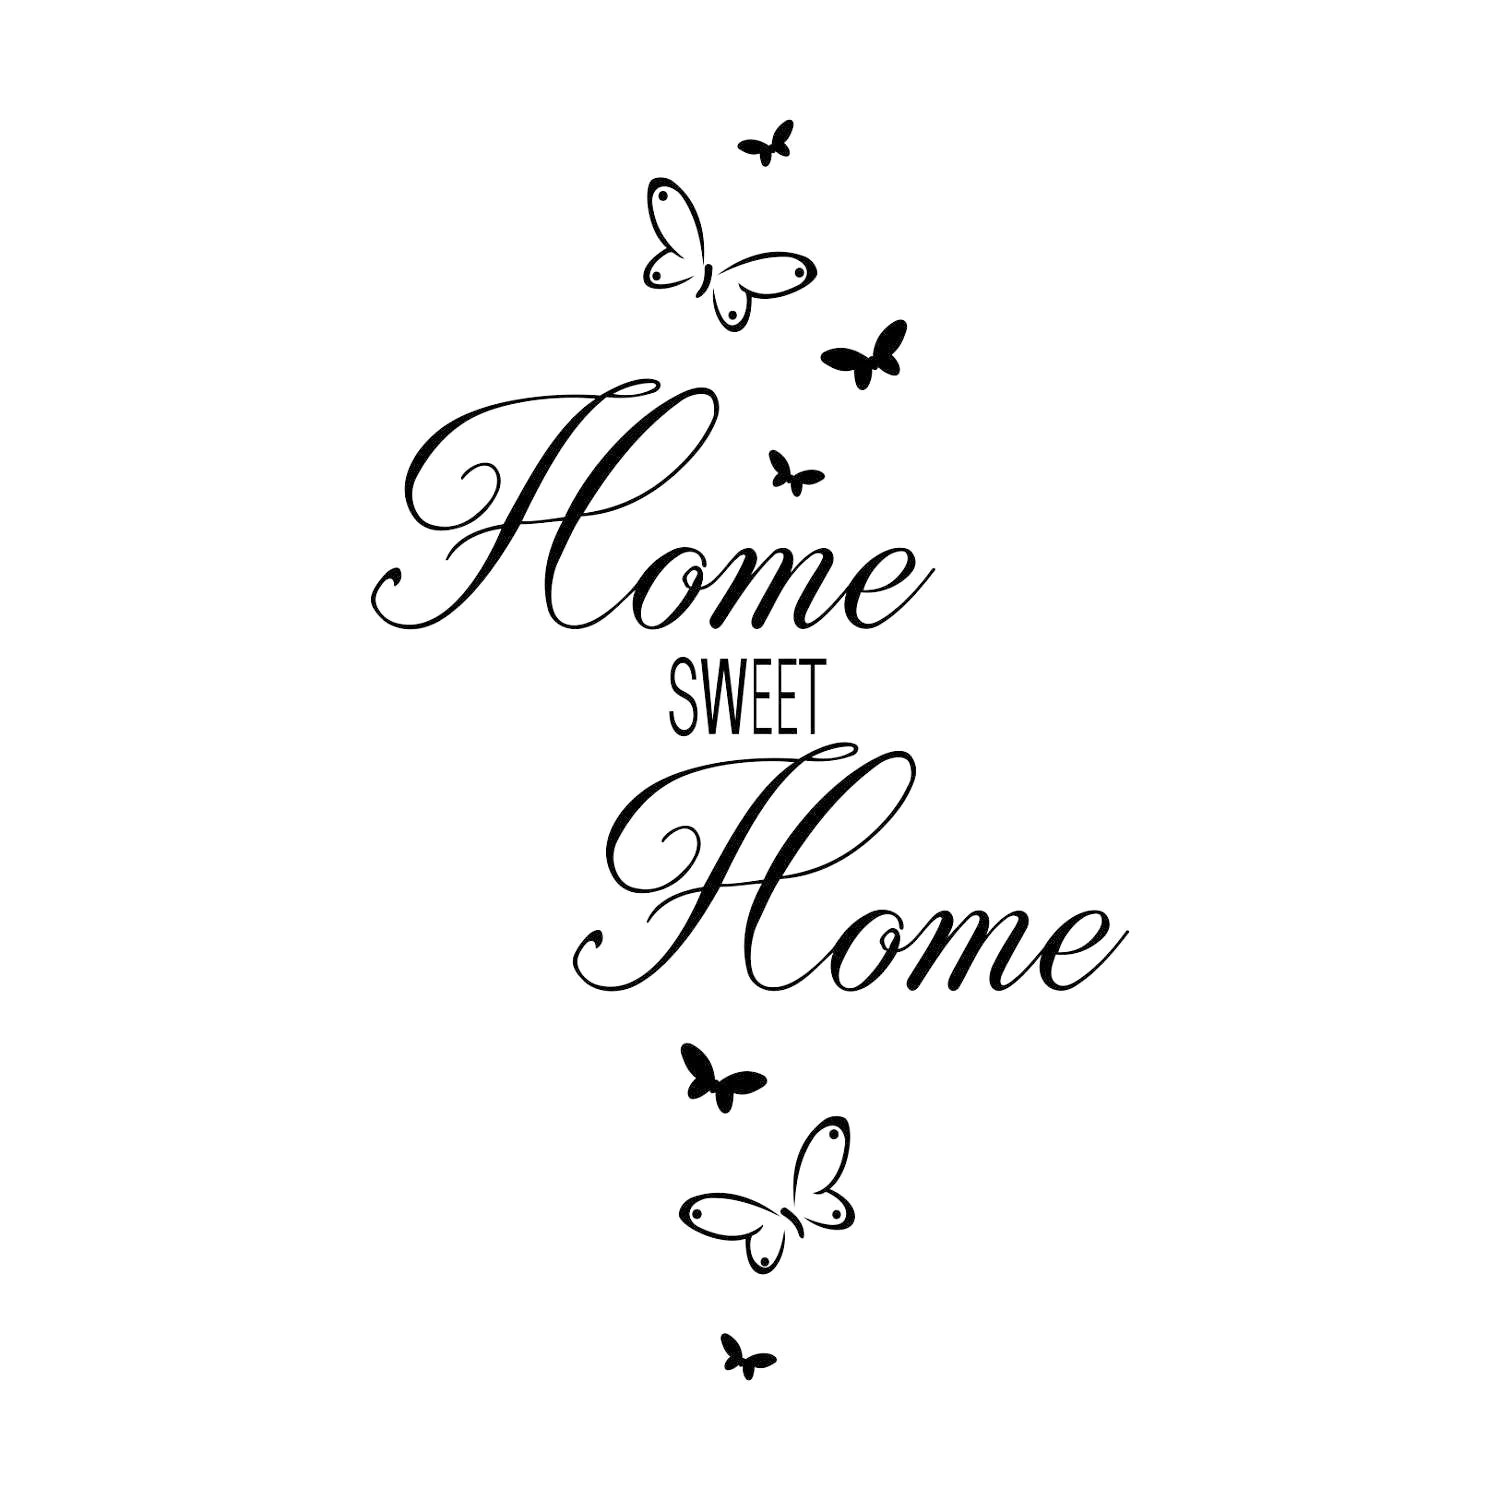 Home Sweet Home Graphics SVG Dxf EPS Png Cdr Ai Pdf Vector Art